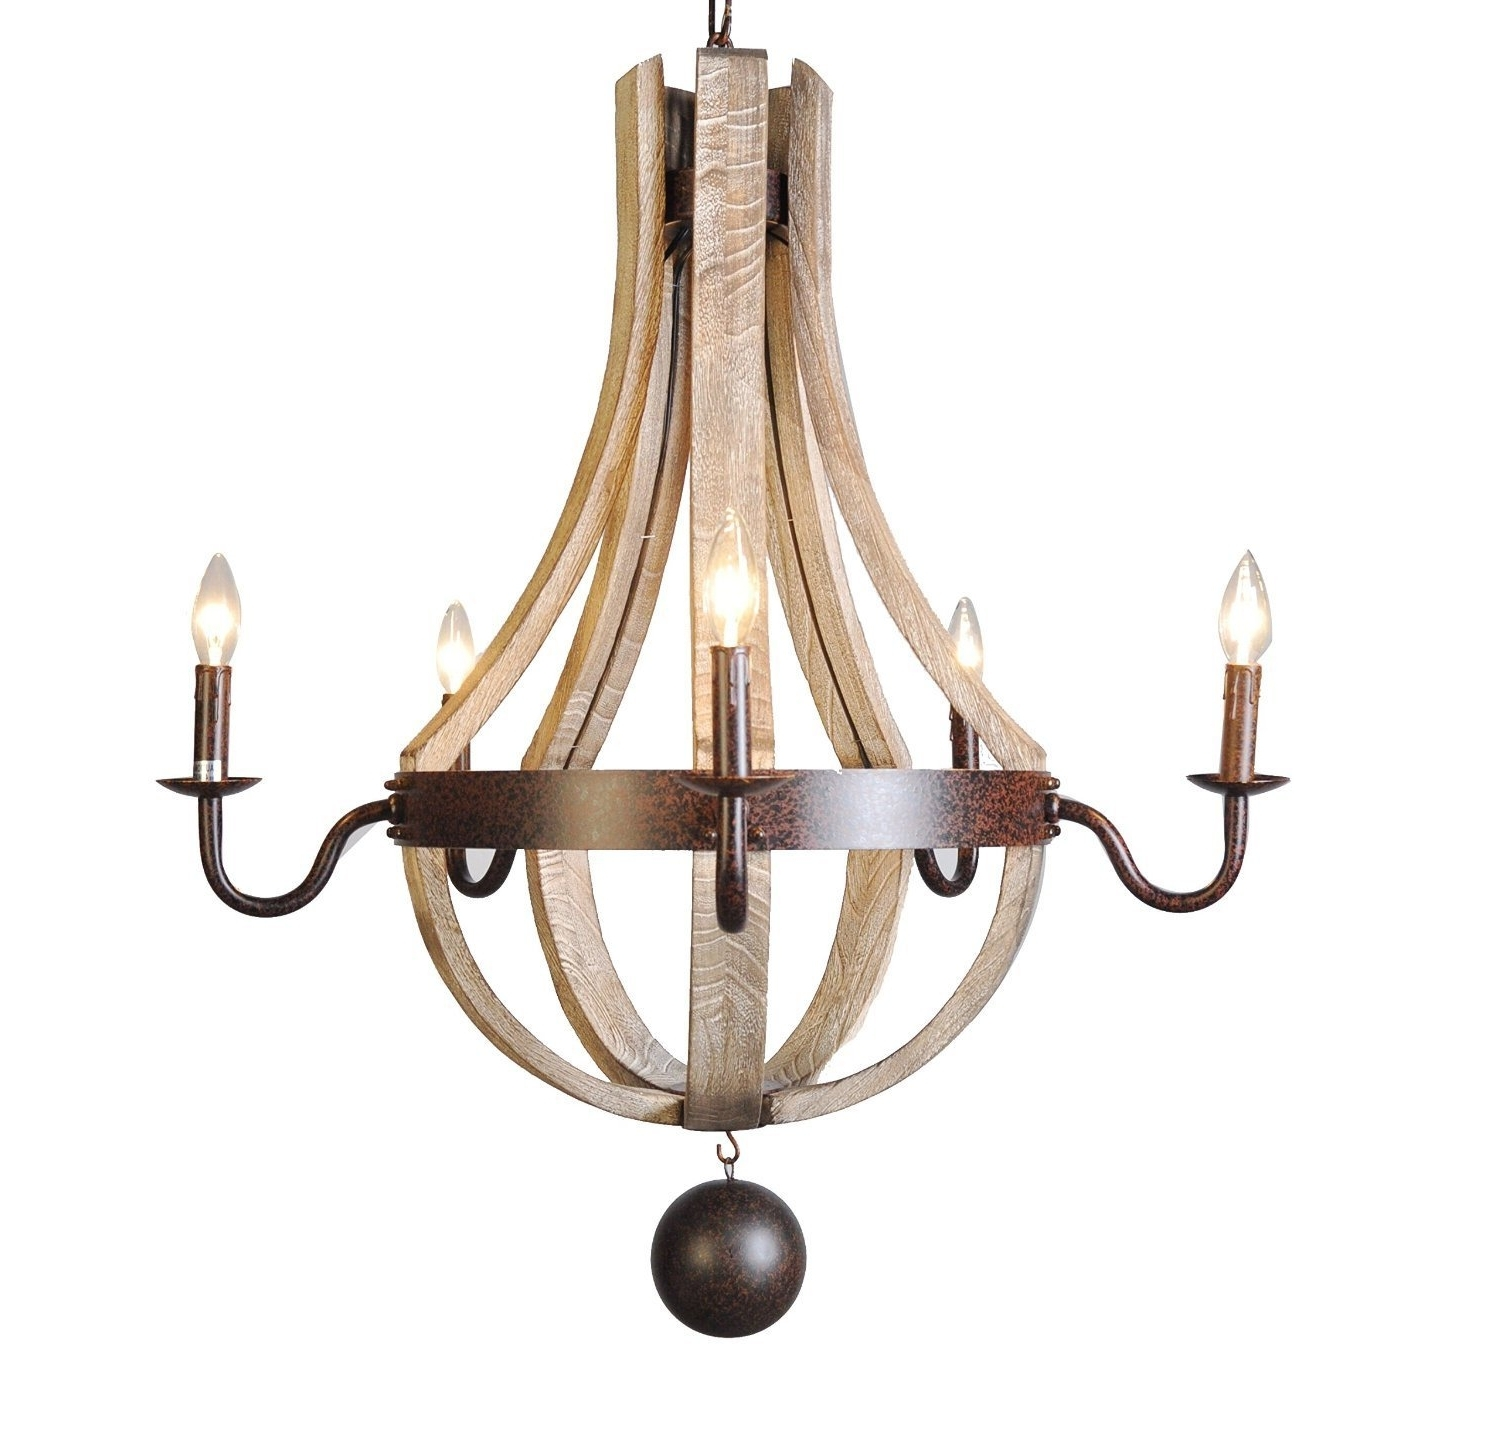 2018 Vintage French Country Wood Metal Wine Barrel Chandelier Pendant Within French Wooden Chandelier (View 11 of 15)